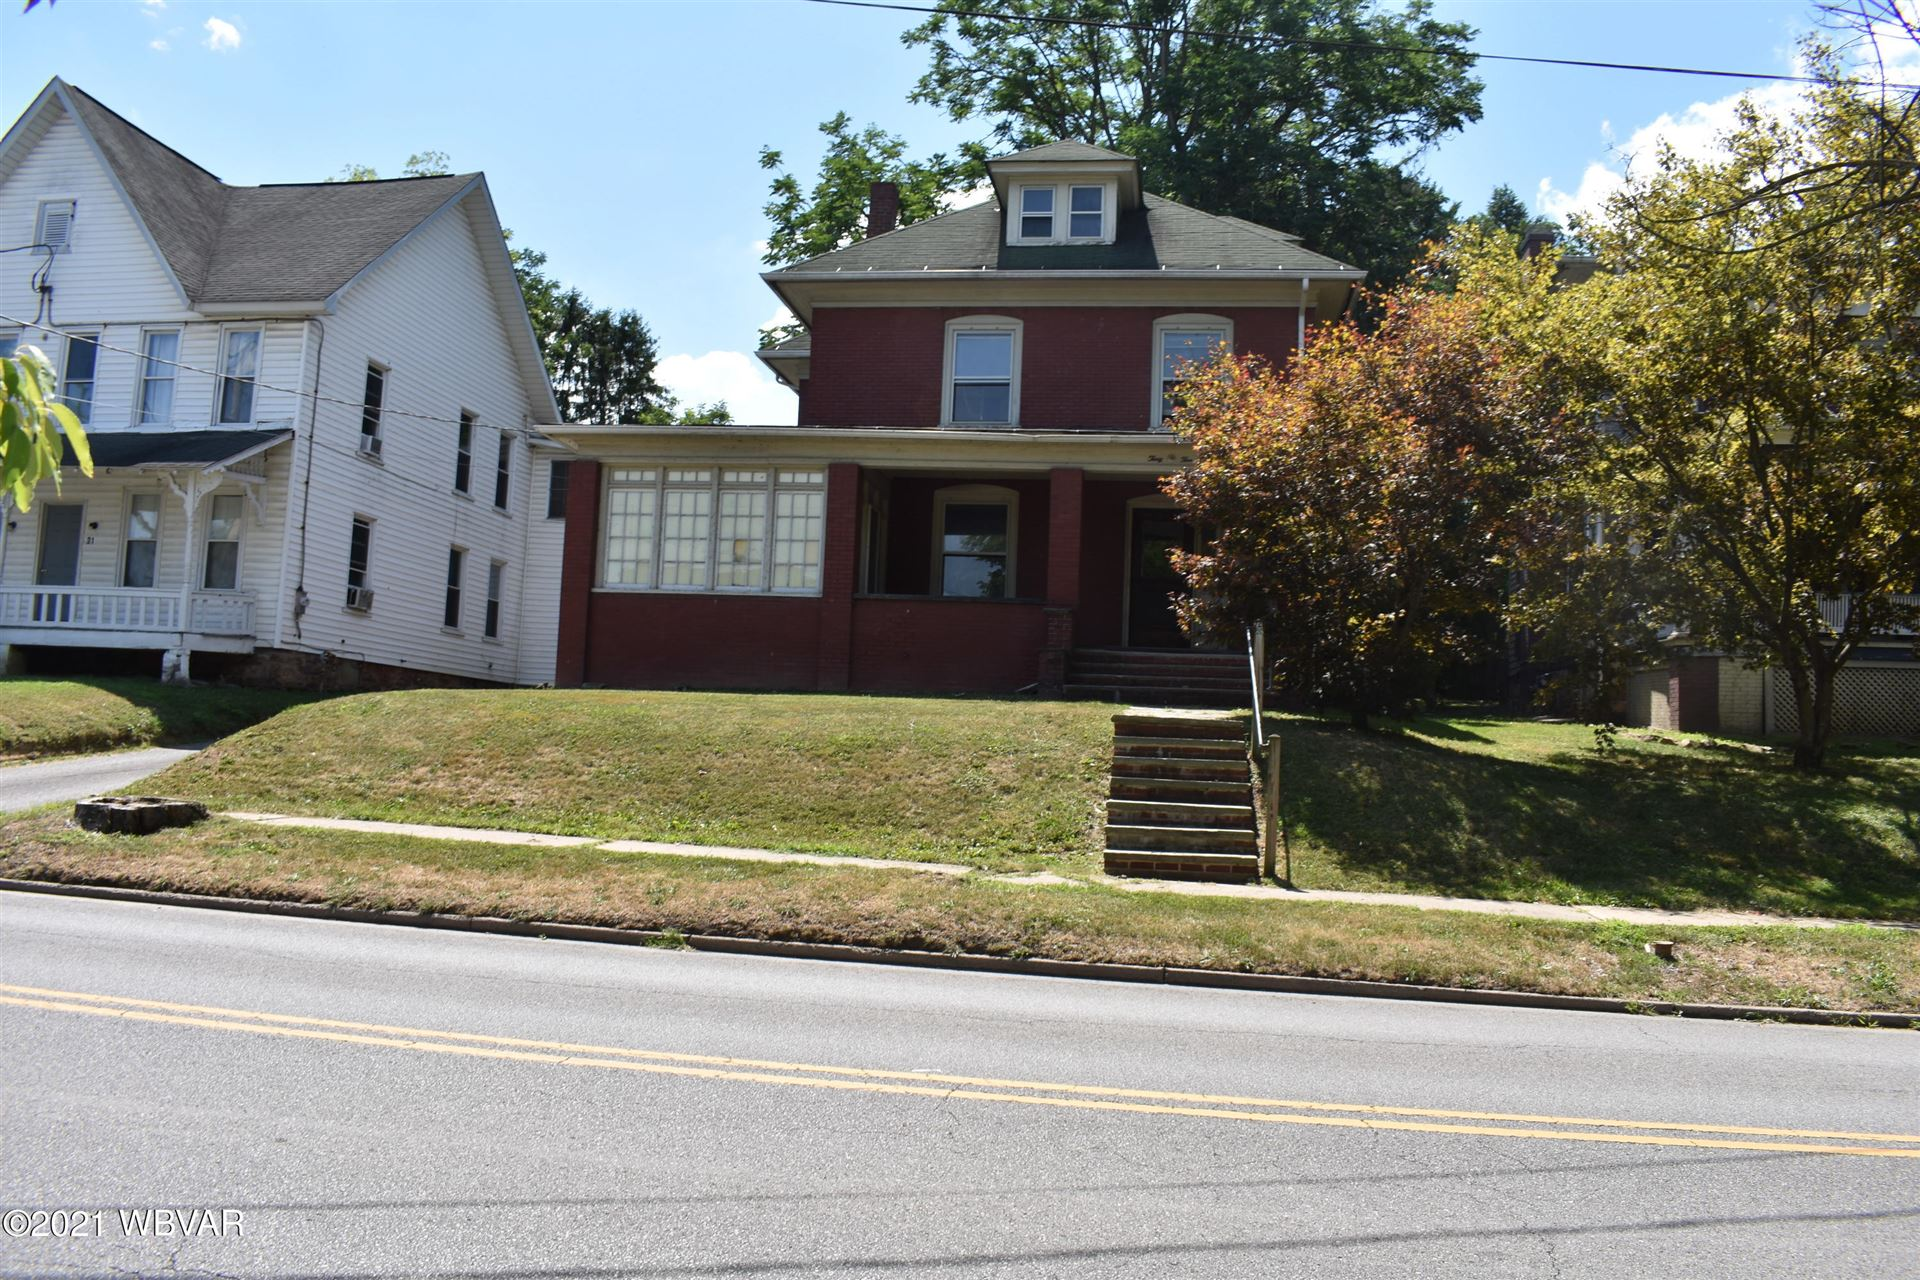 35 N FAIRVIEW STREET, Lock Haven, PA 17745 - #: WB-92289